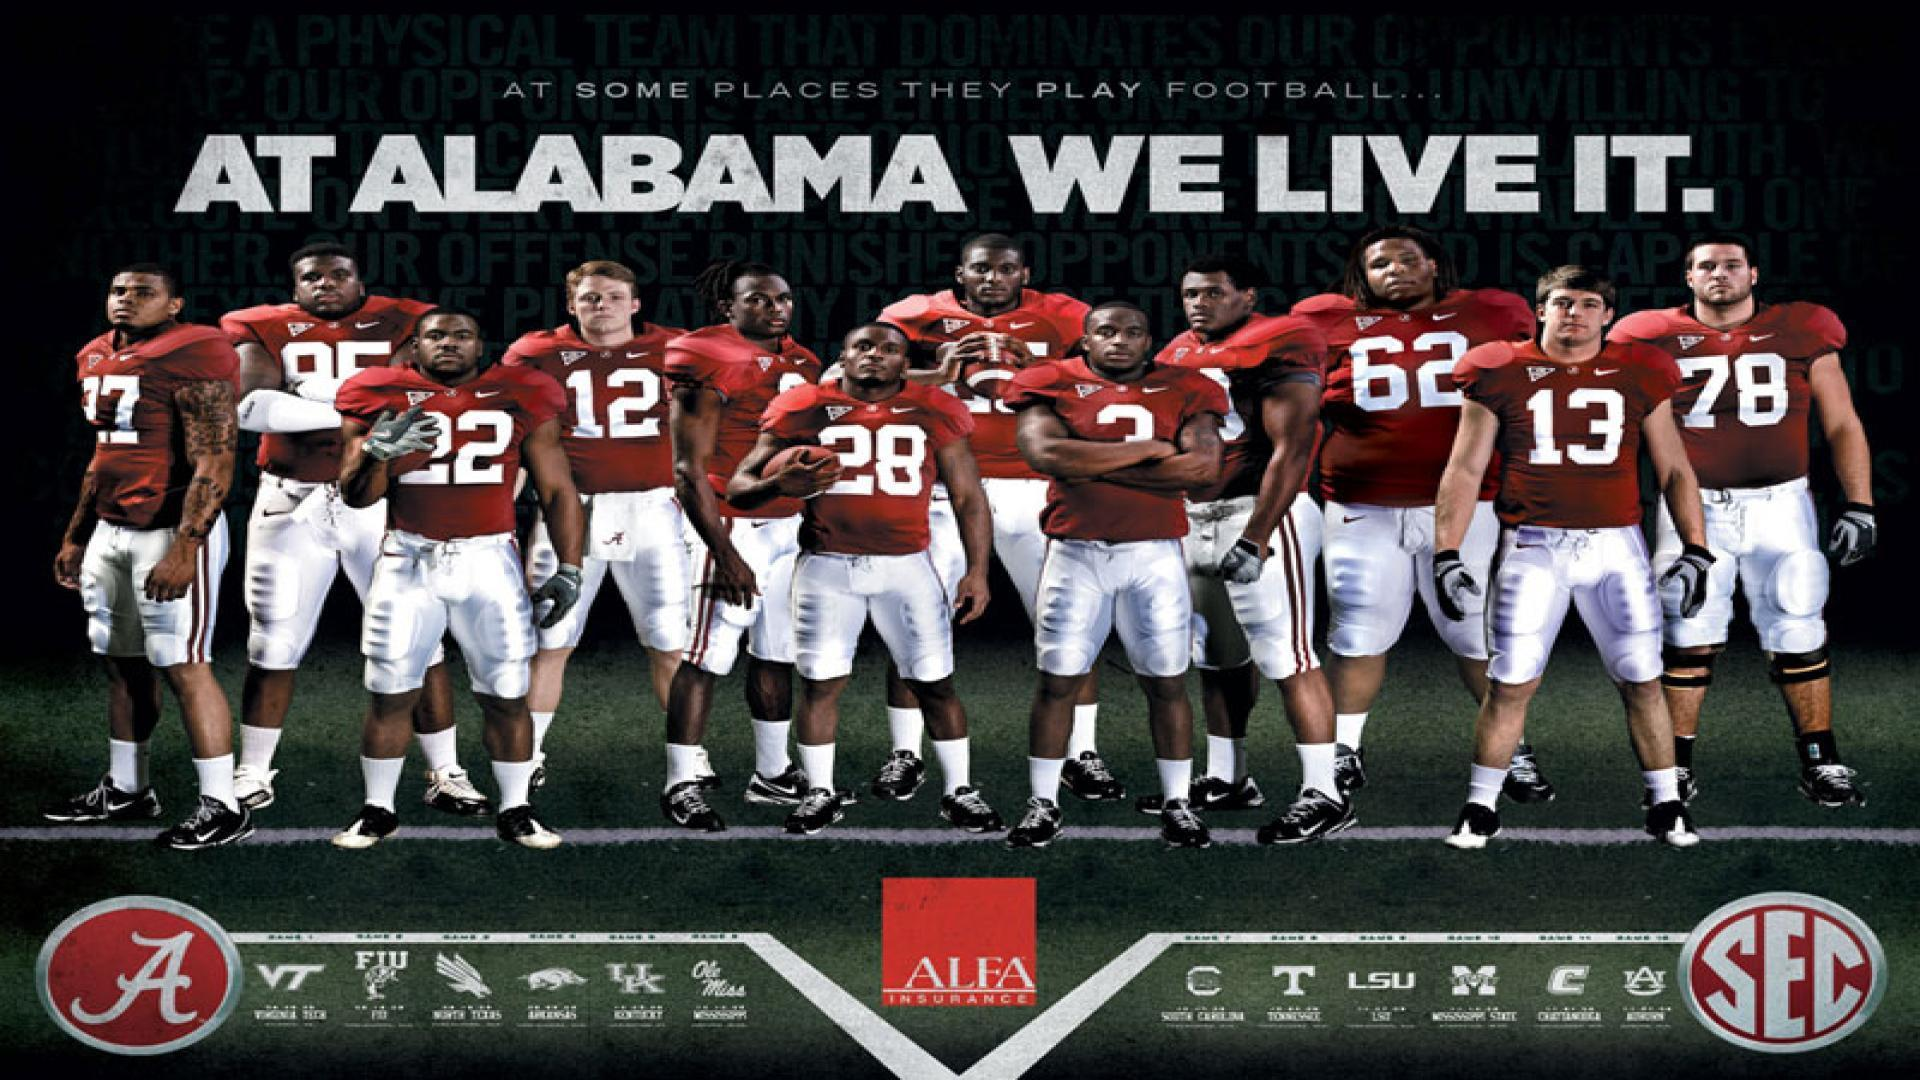 Awesome Free Alabama Crimson Tide Wallpapers Panda 1440x900PX